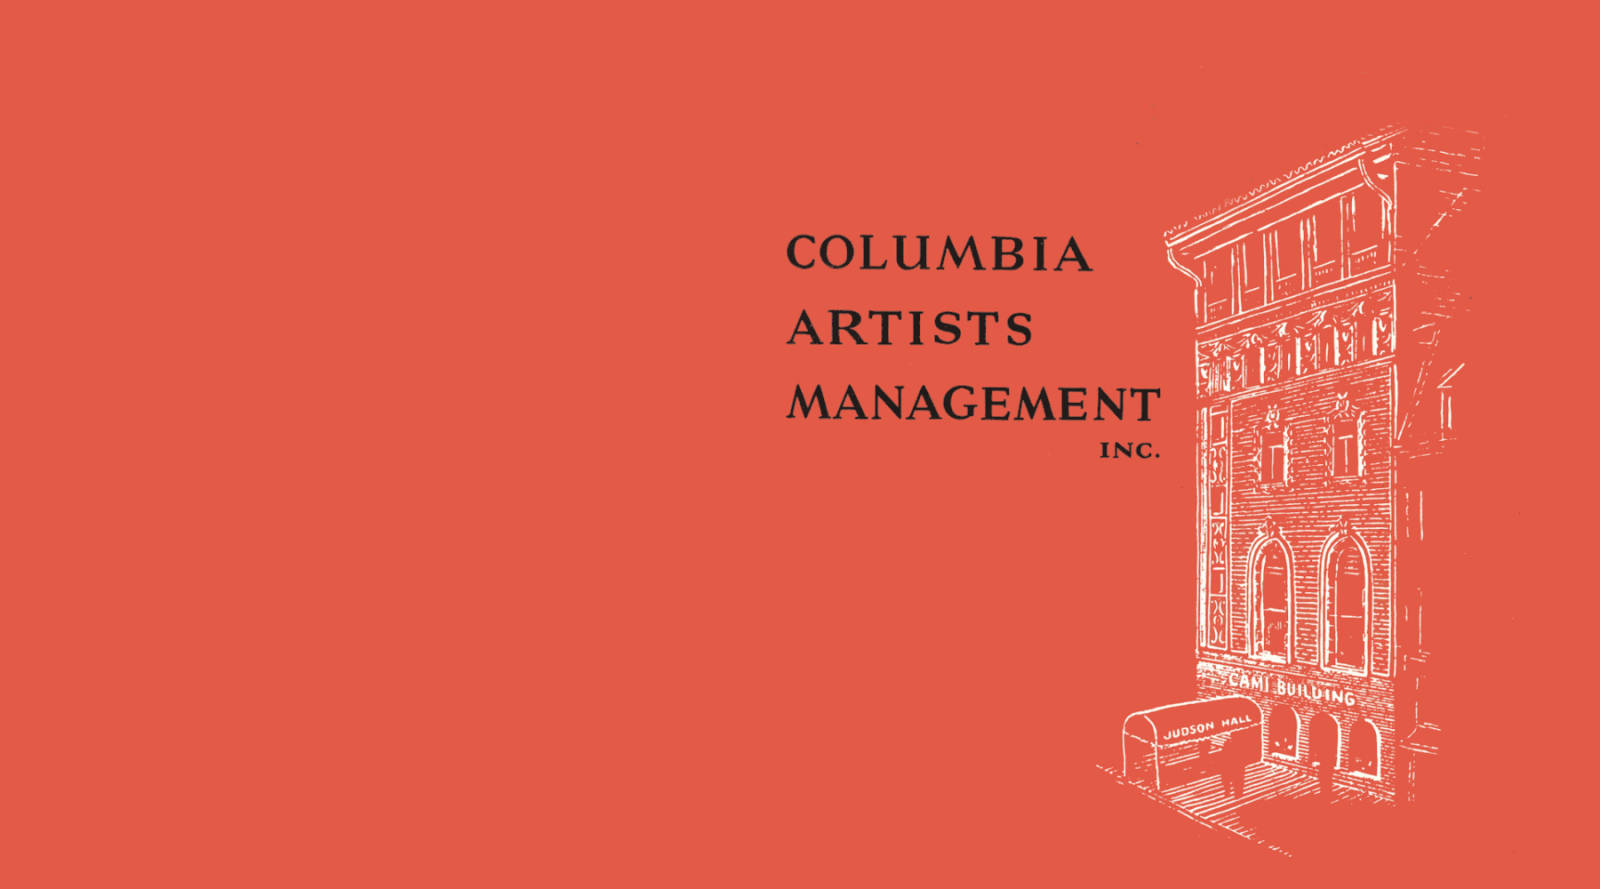 About Columbia Artists